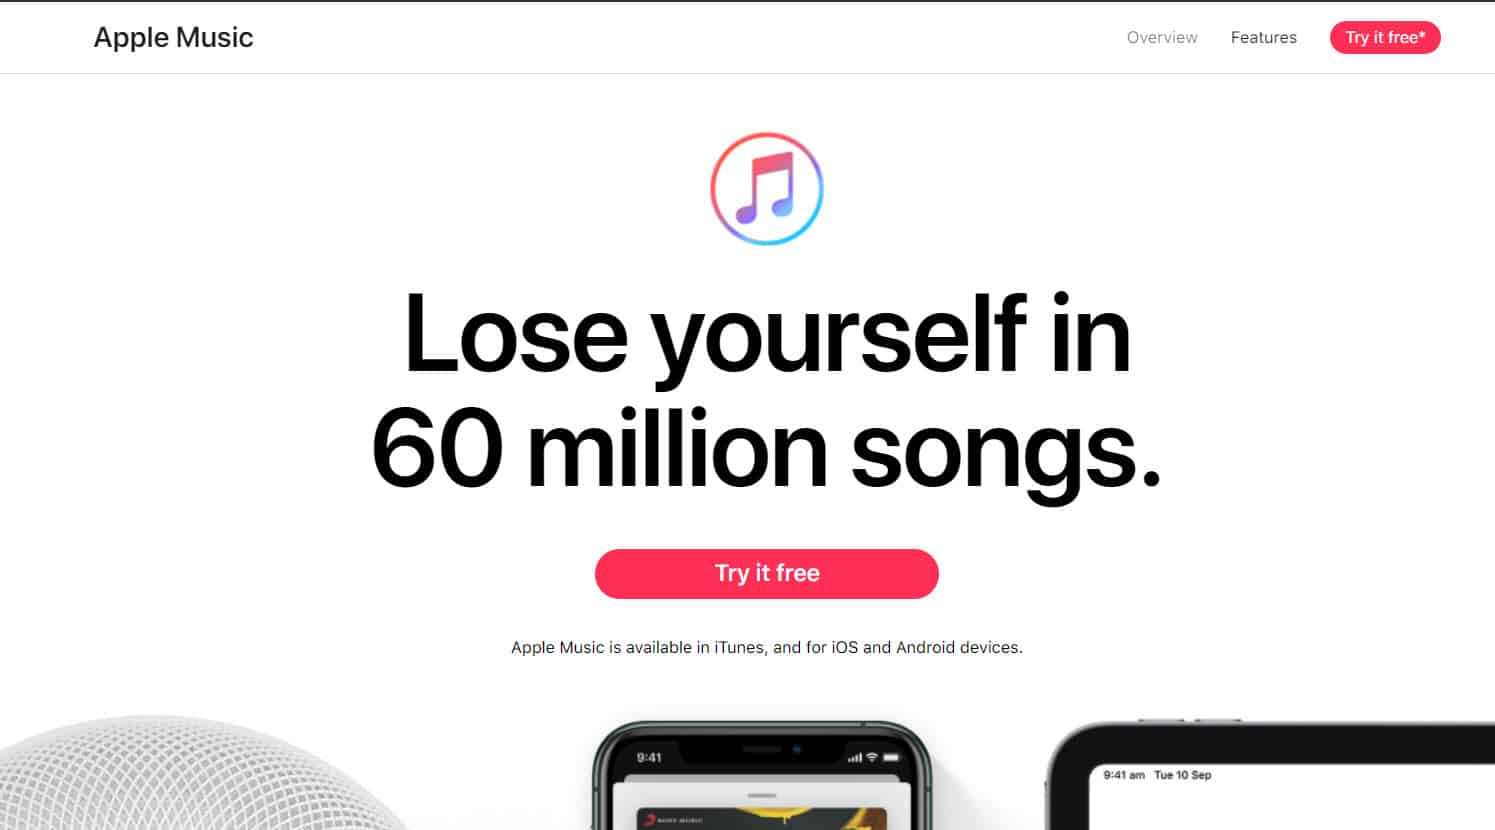 Get Apple Music free for 3 months (Free Trial)